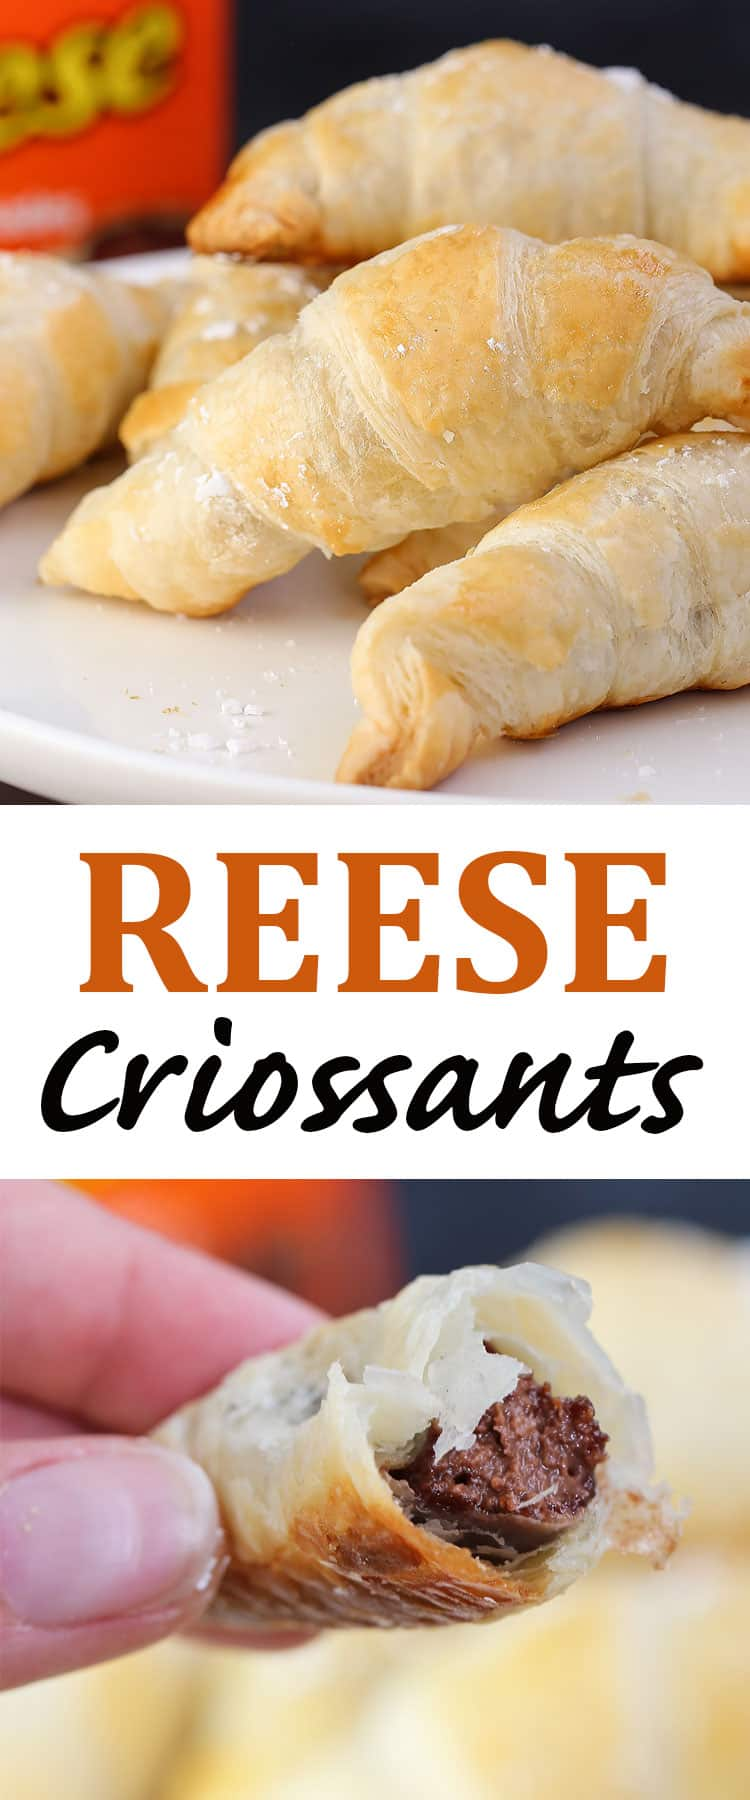 reese criossants recipe